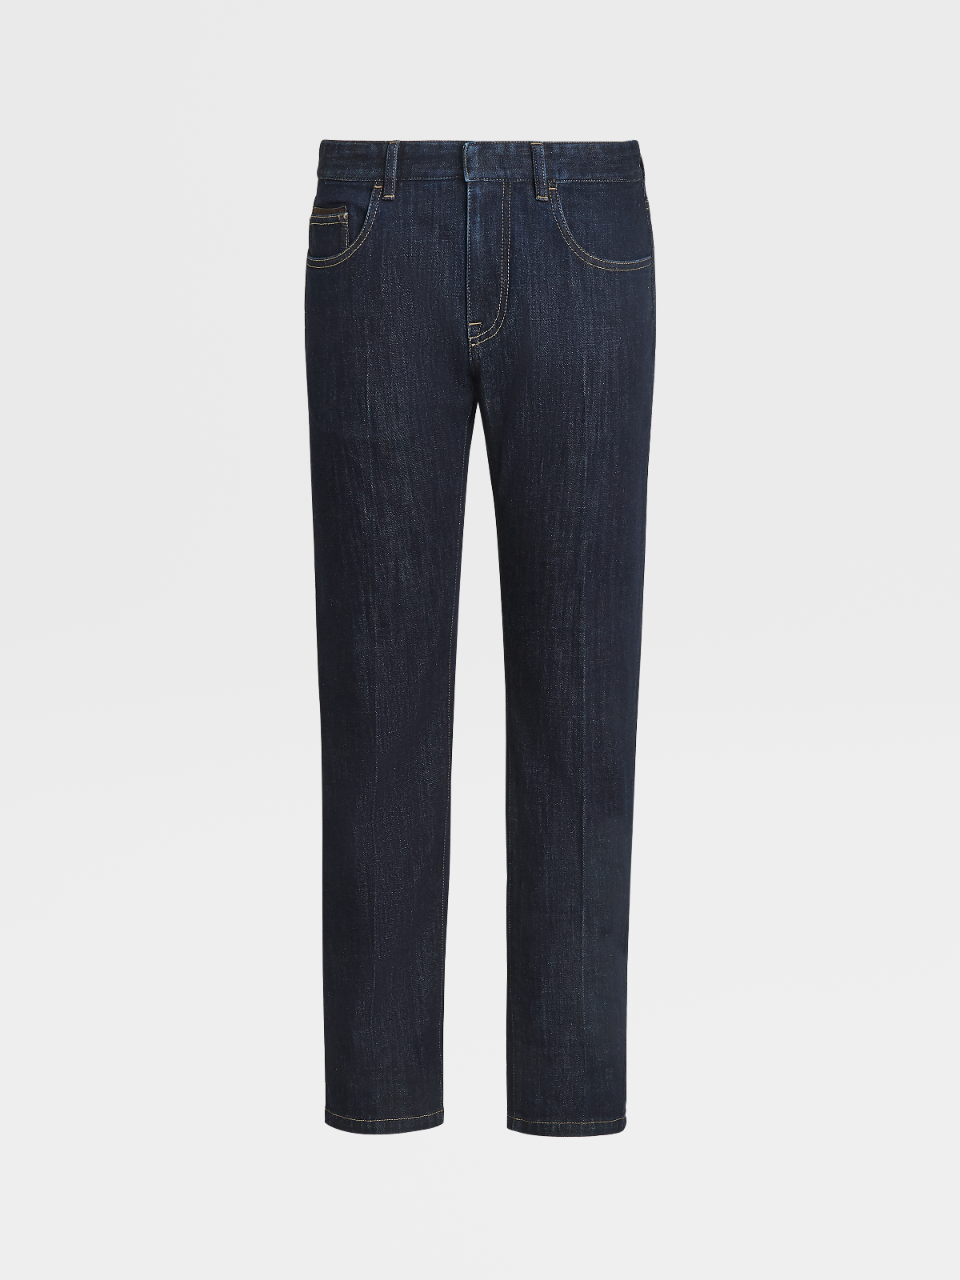 Stretch Cotton Denim Trousers